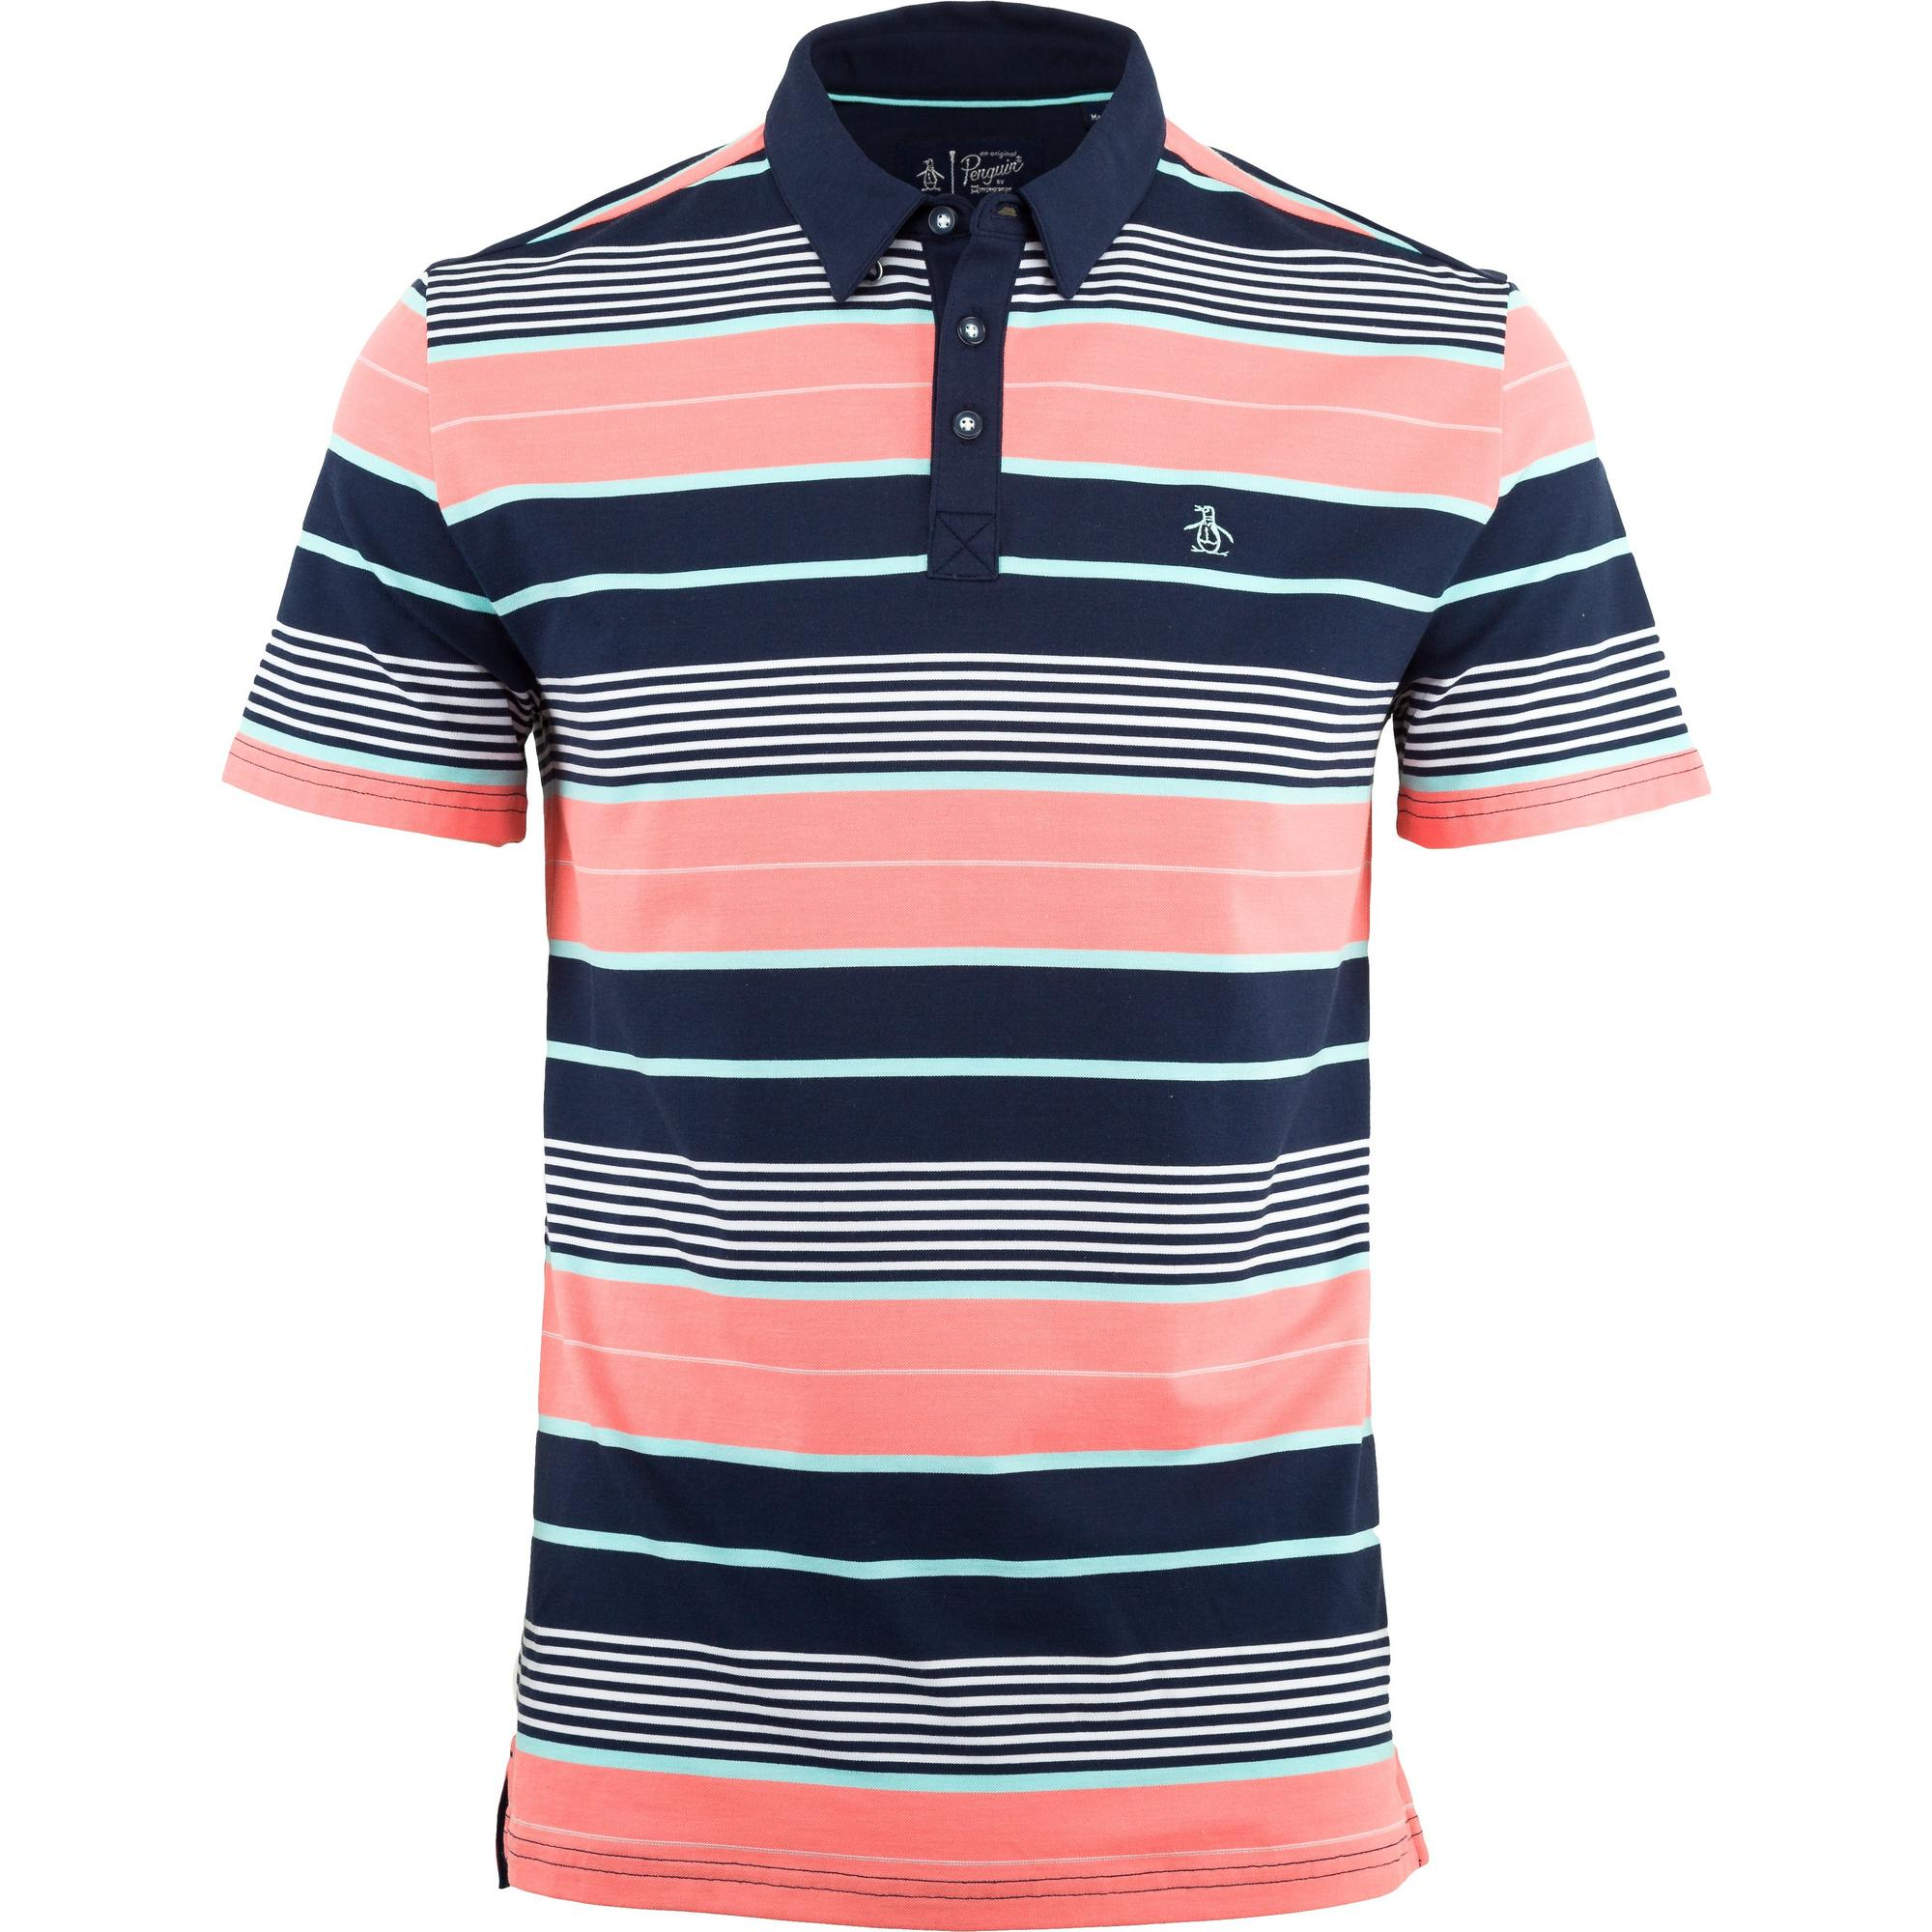 Men's Roadmap Stripe Stretch Short Sleeve Shirt